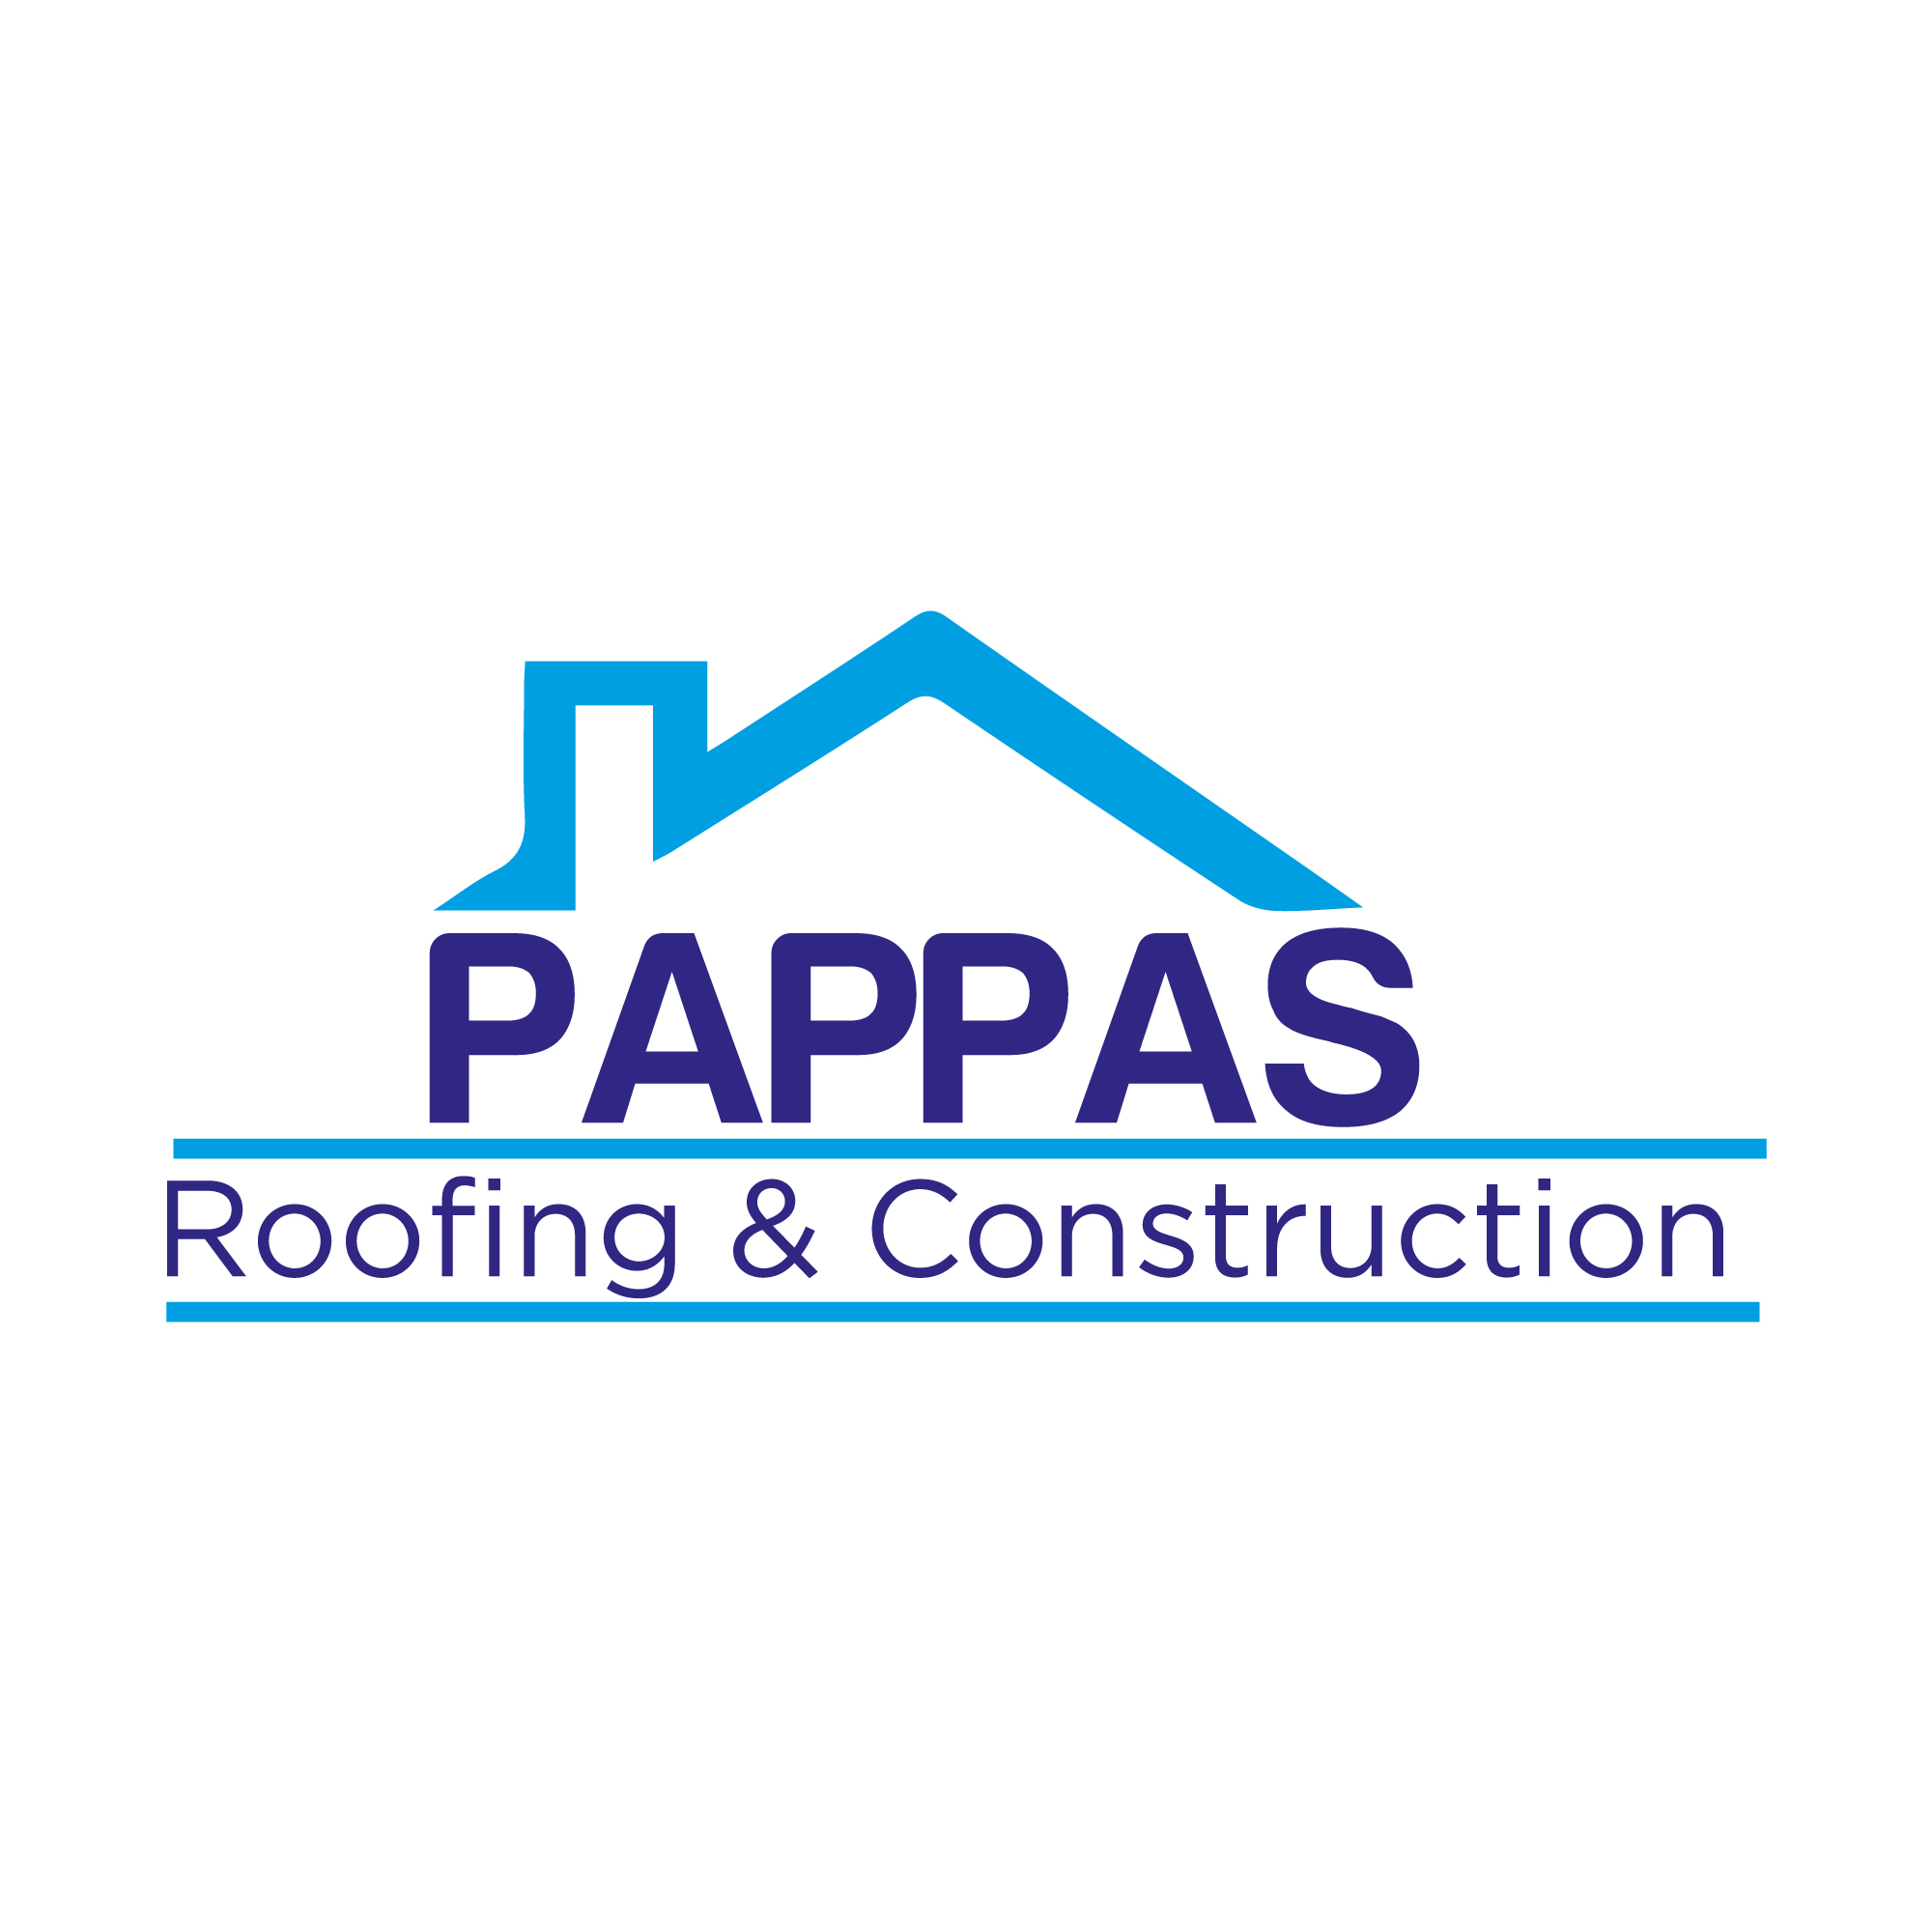 About Pappas Roofing And Construction And The Work We Do